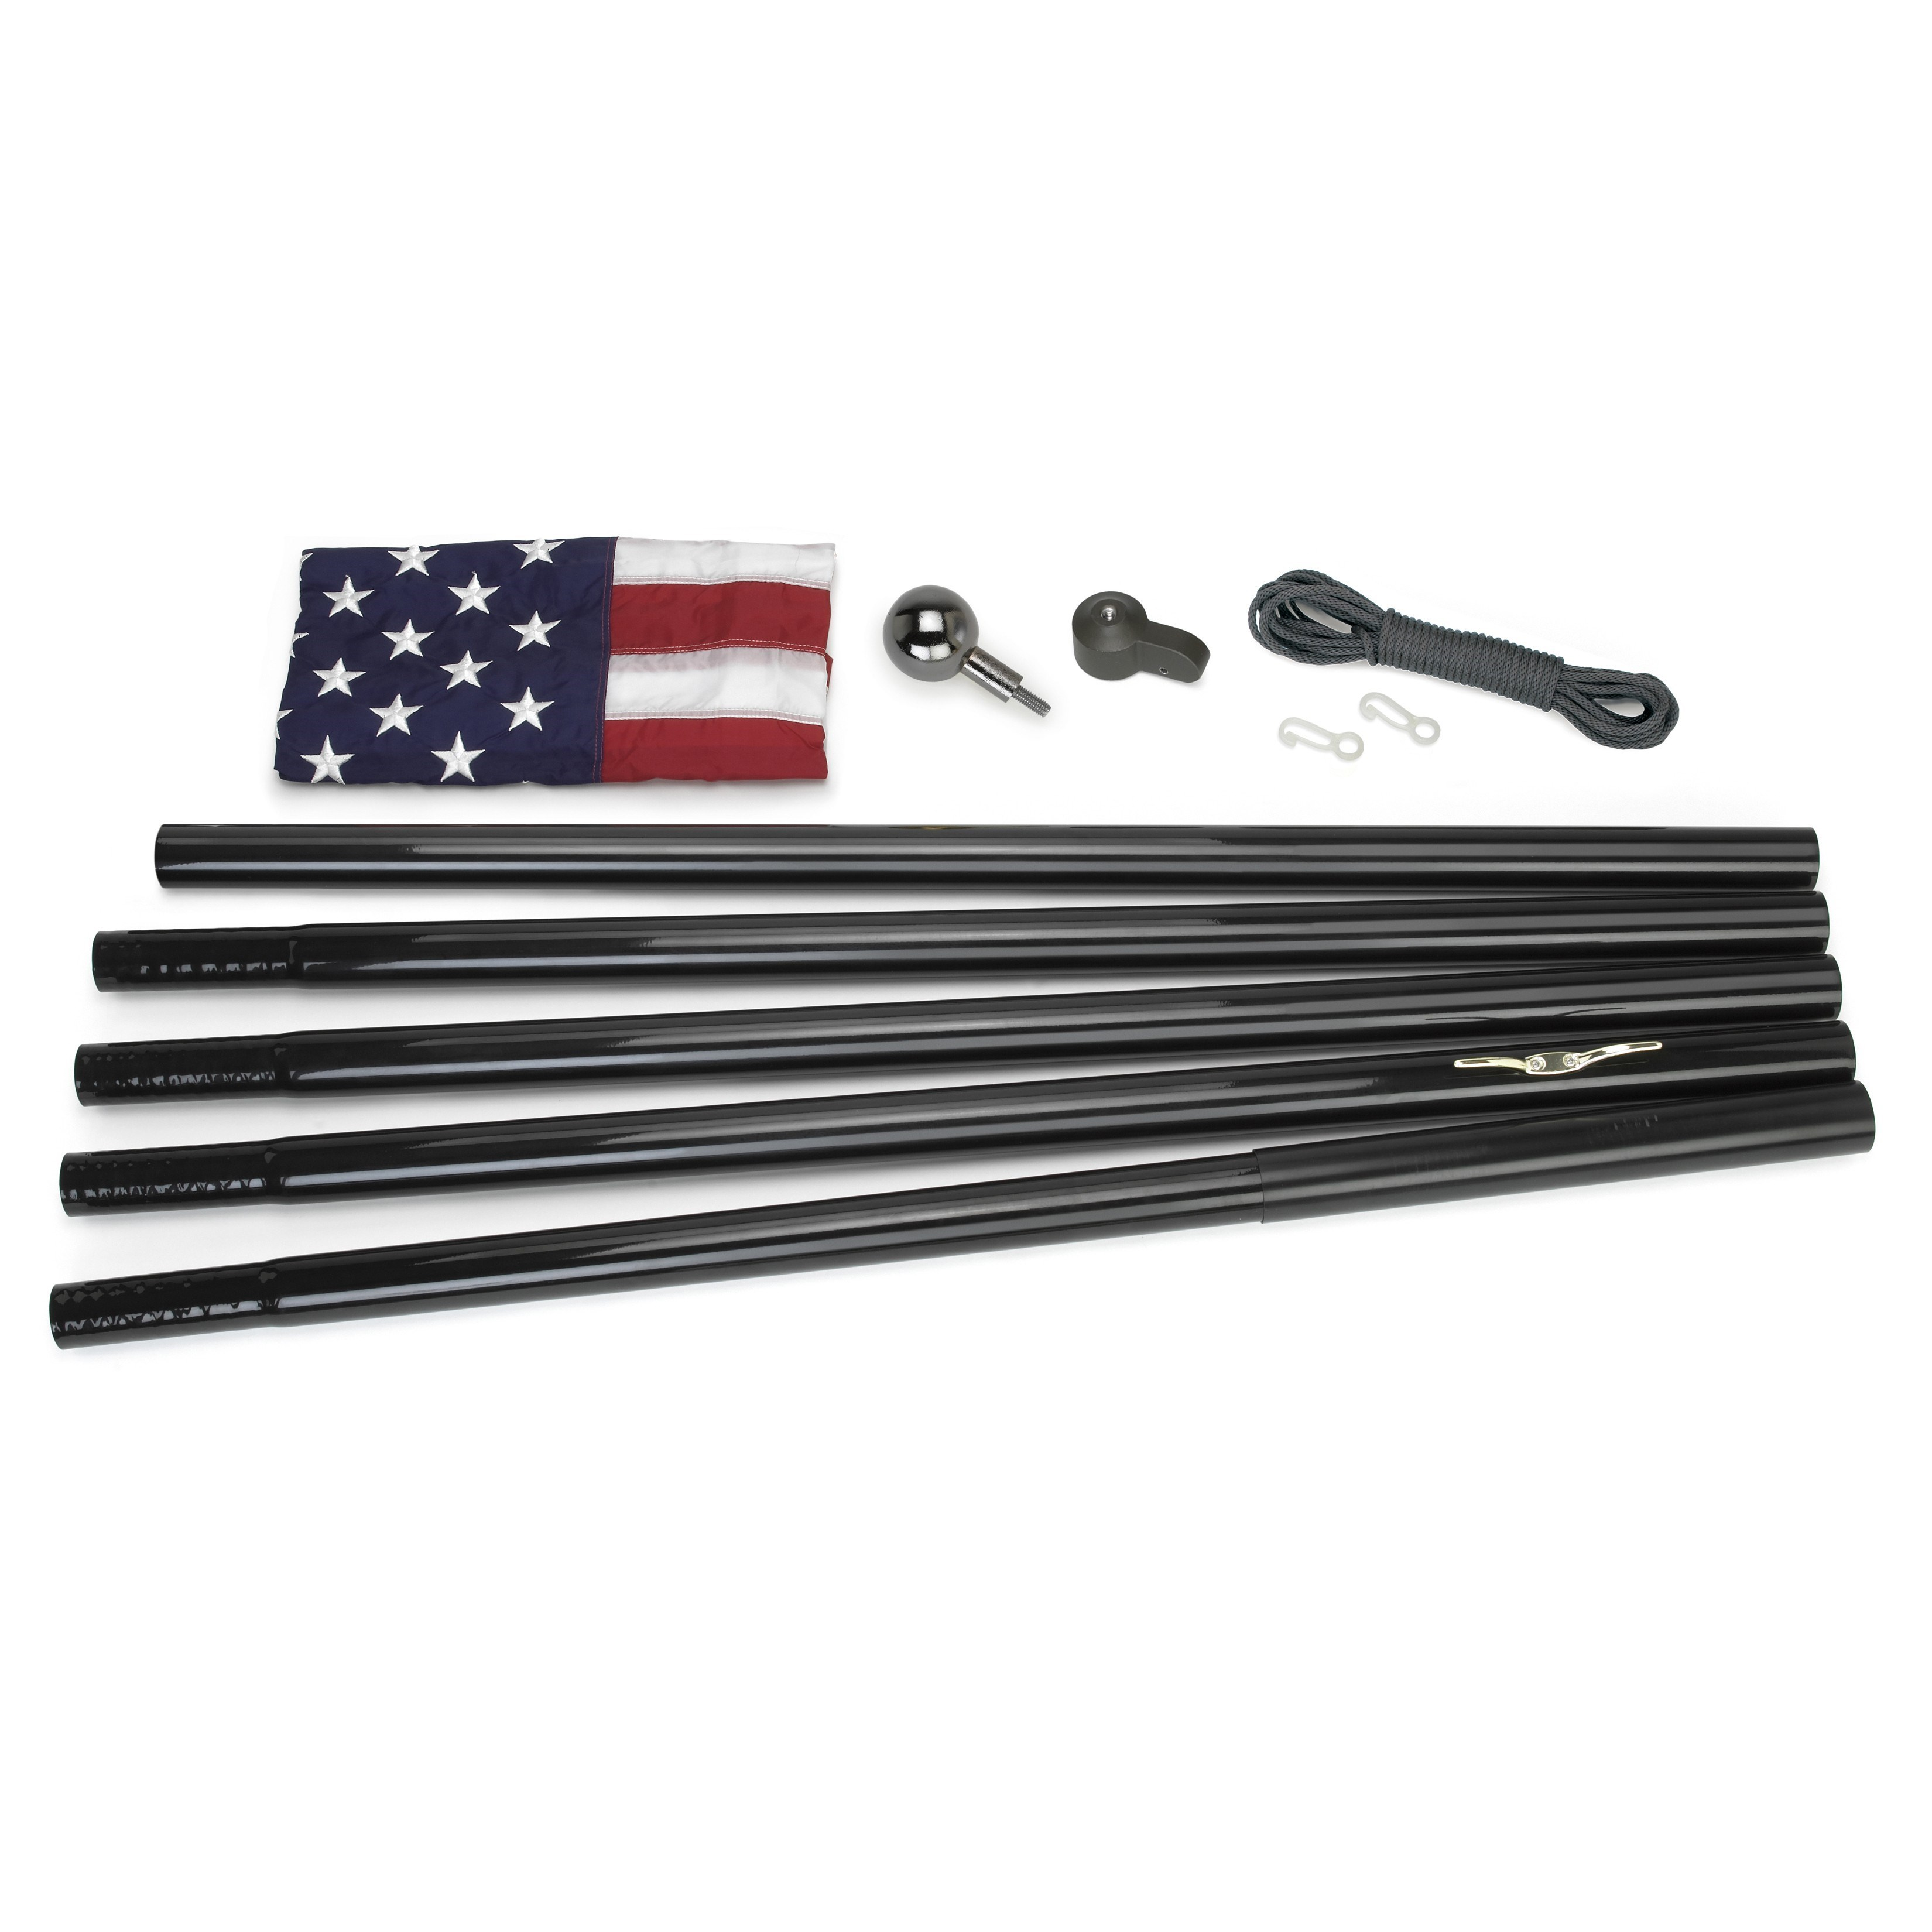 Buy US Flags, Flag Poles, Banners and More! at US Flag Supply